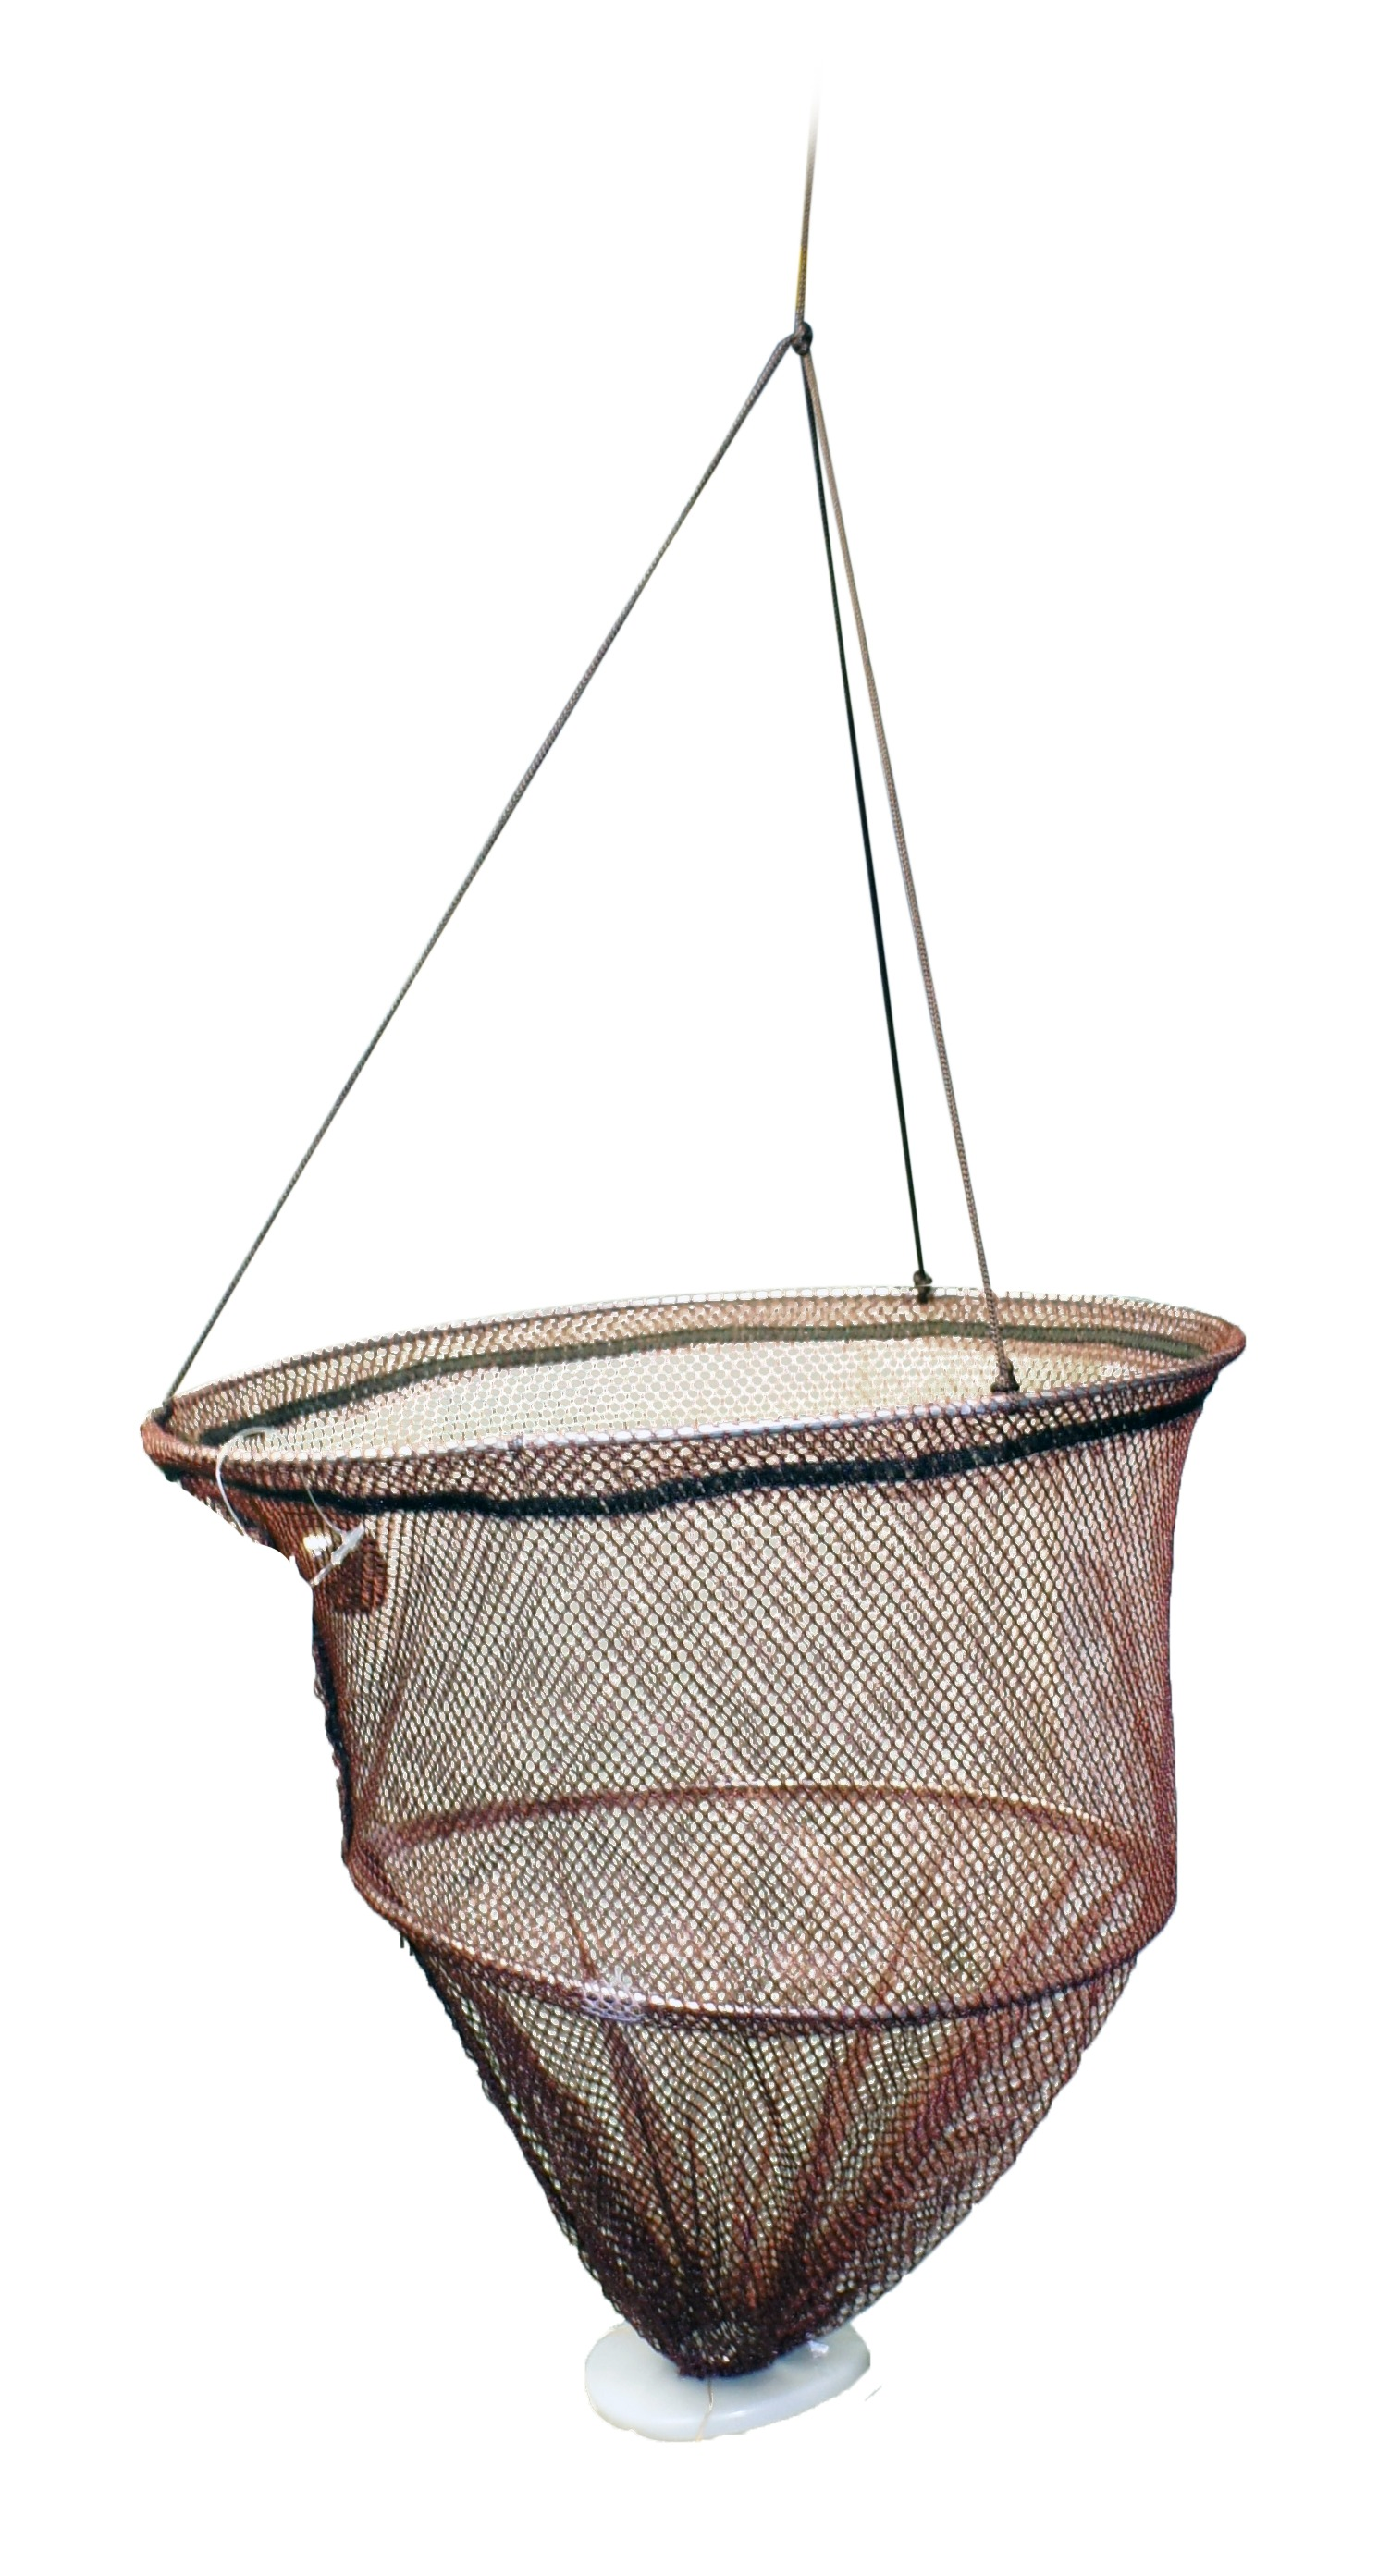 Masterline crab busters childrens crabbing drop net for Drop net fishing